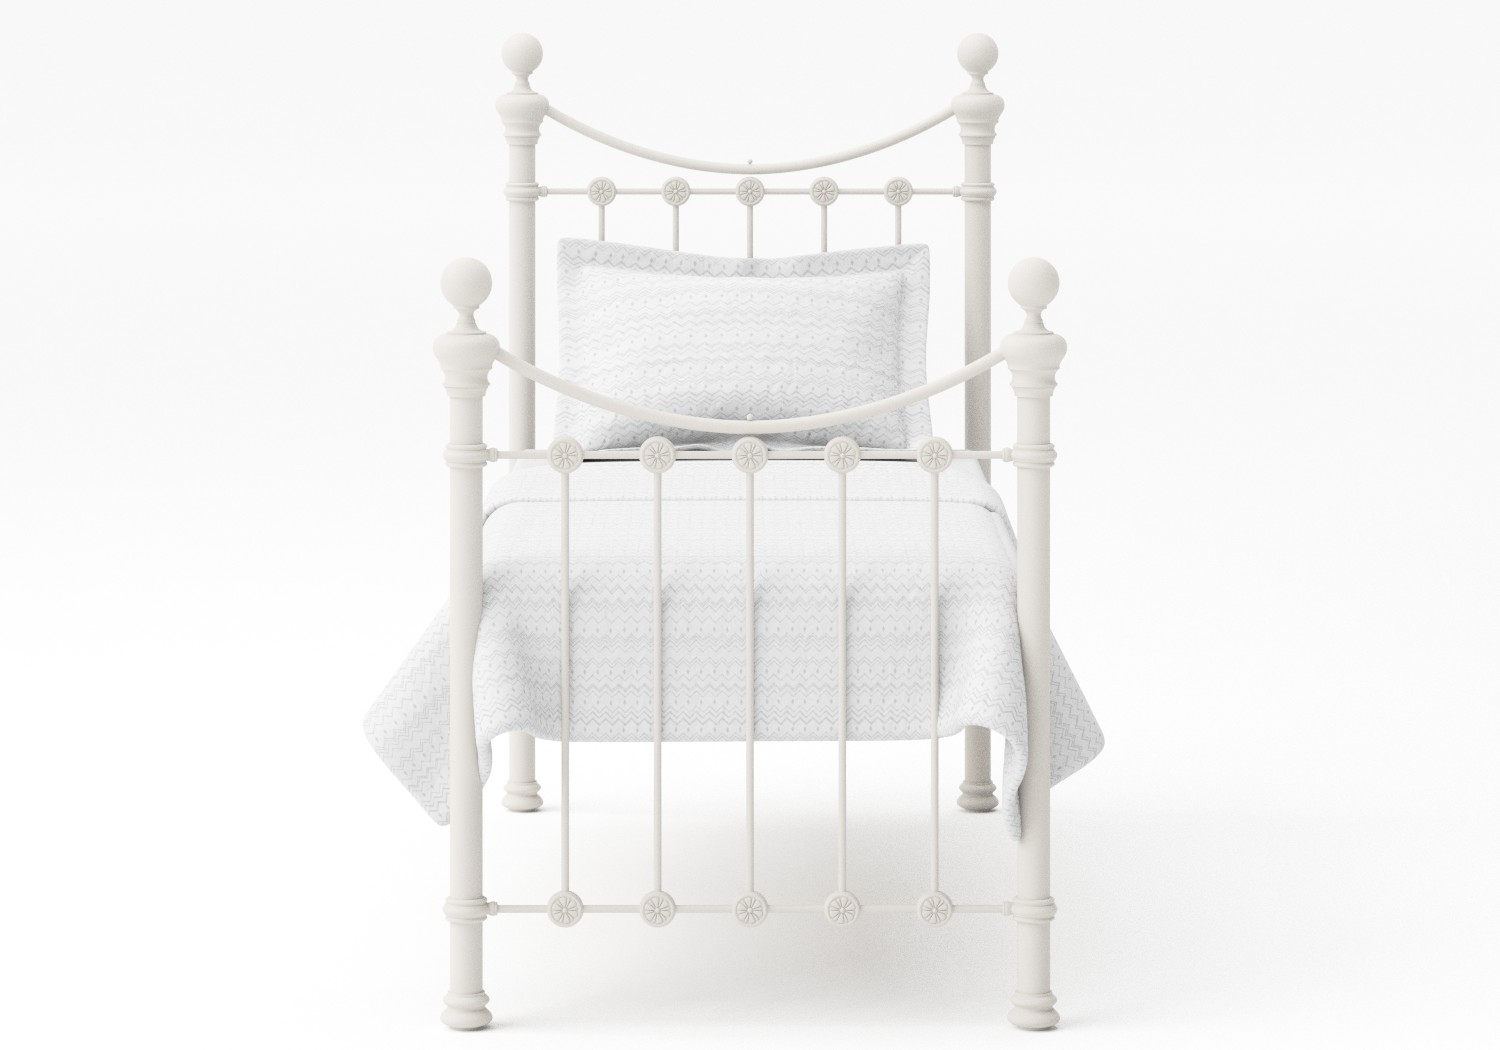 Selkirk Single Iron/Metal Bed in Glossy Ivory with ivory painted details